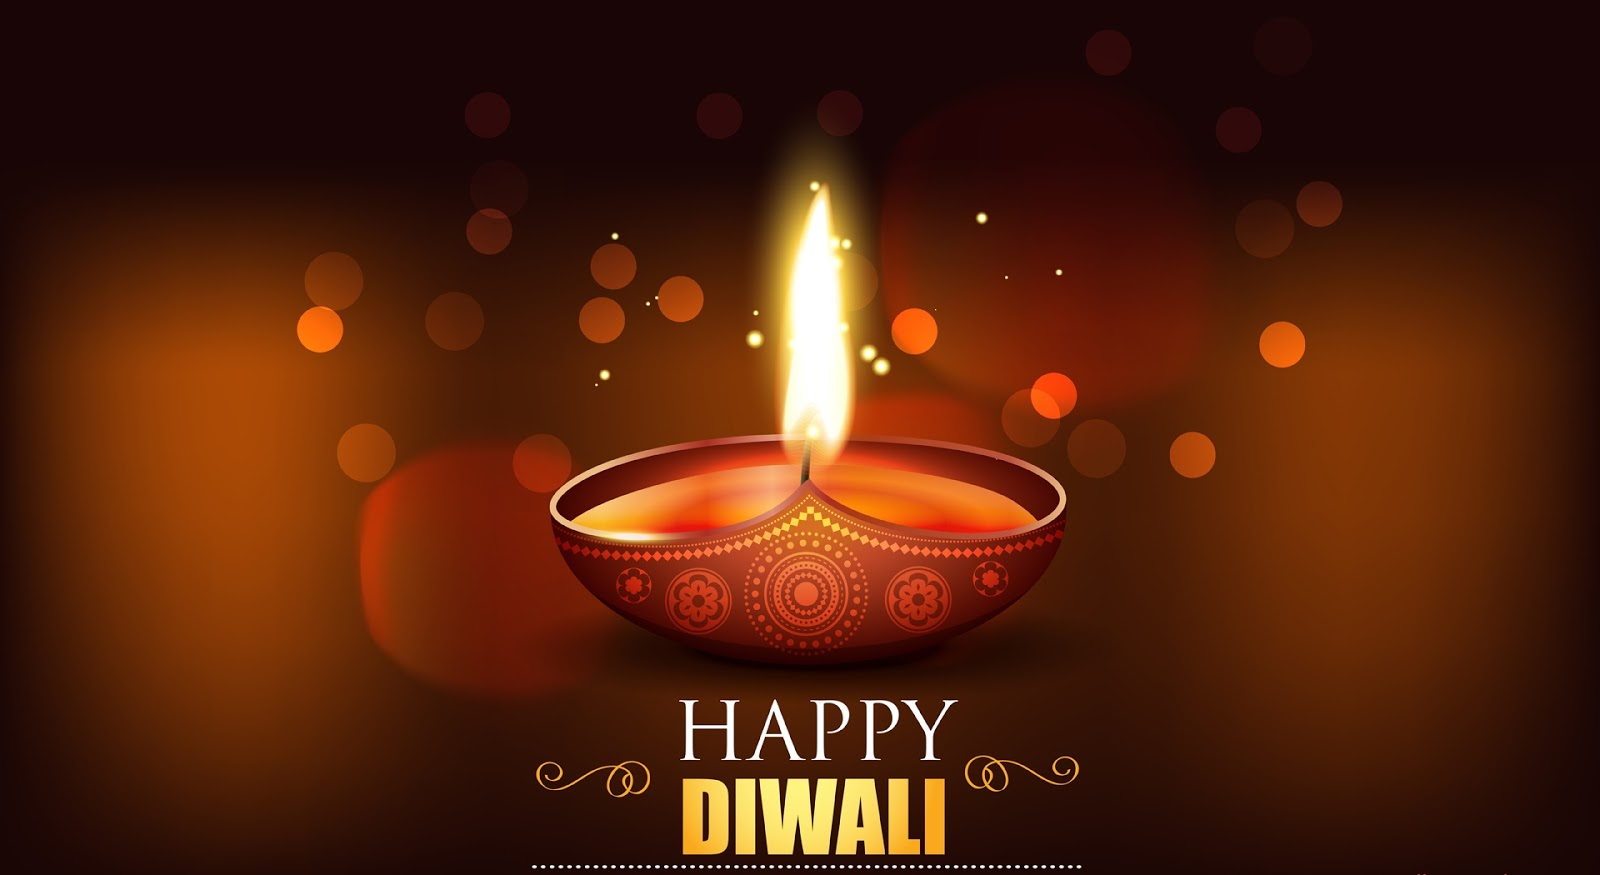 Diwali sms and greetings messages for diwali delhiflash diwali sms and greetings messages for diwali kristyandbryce Choice Image